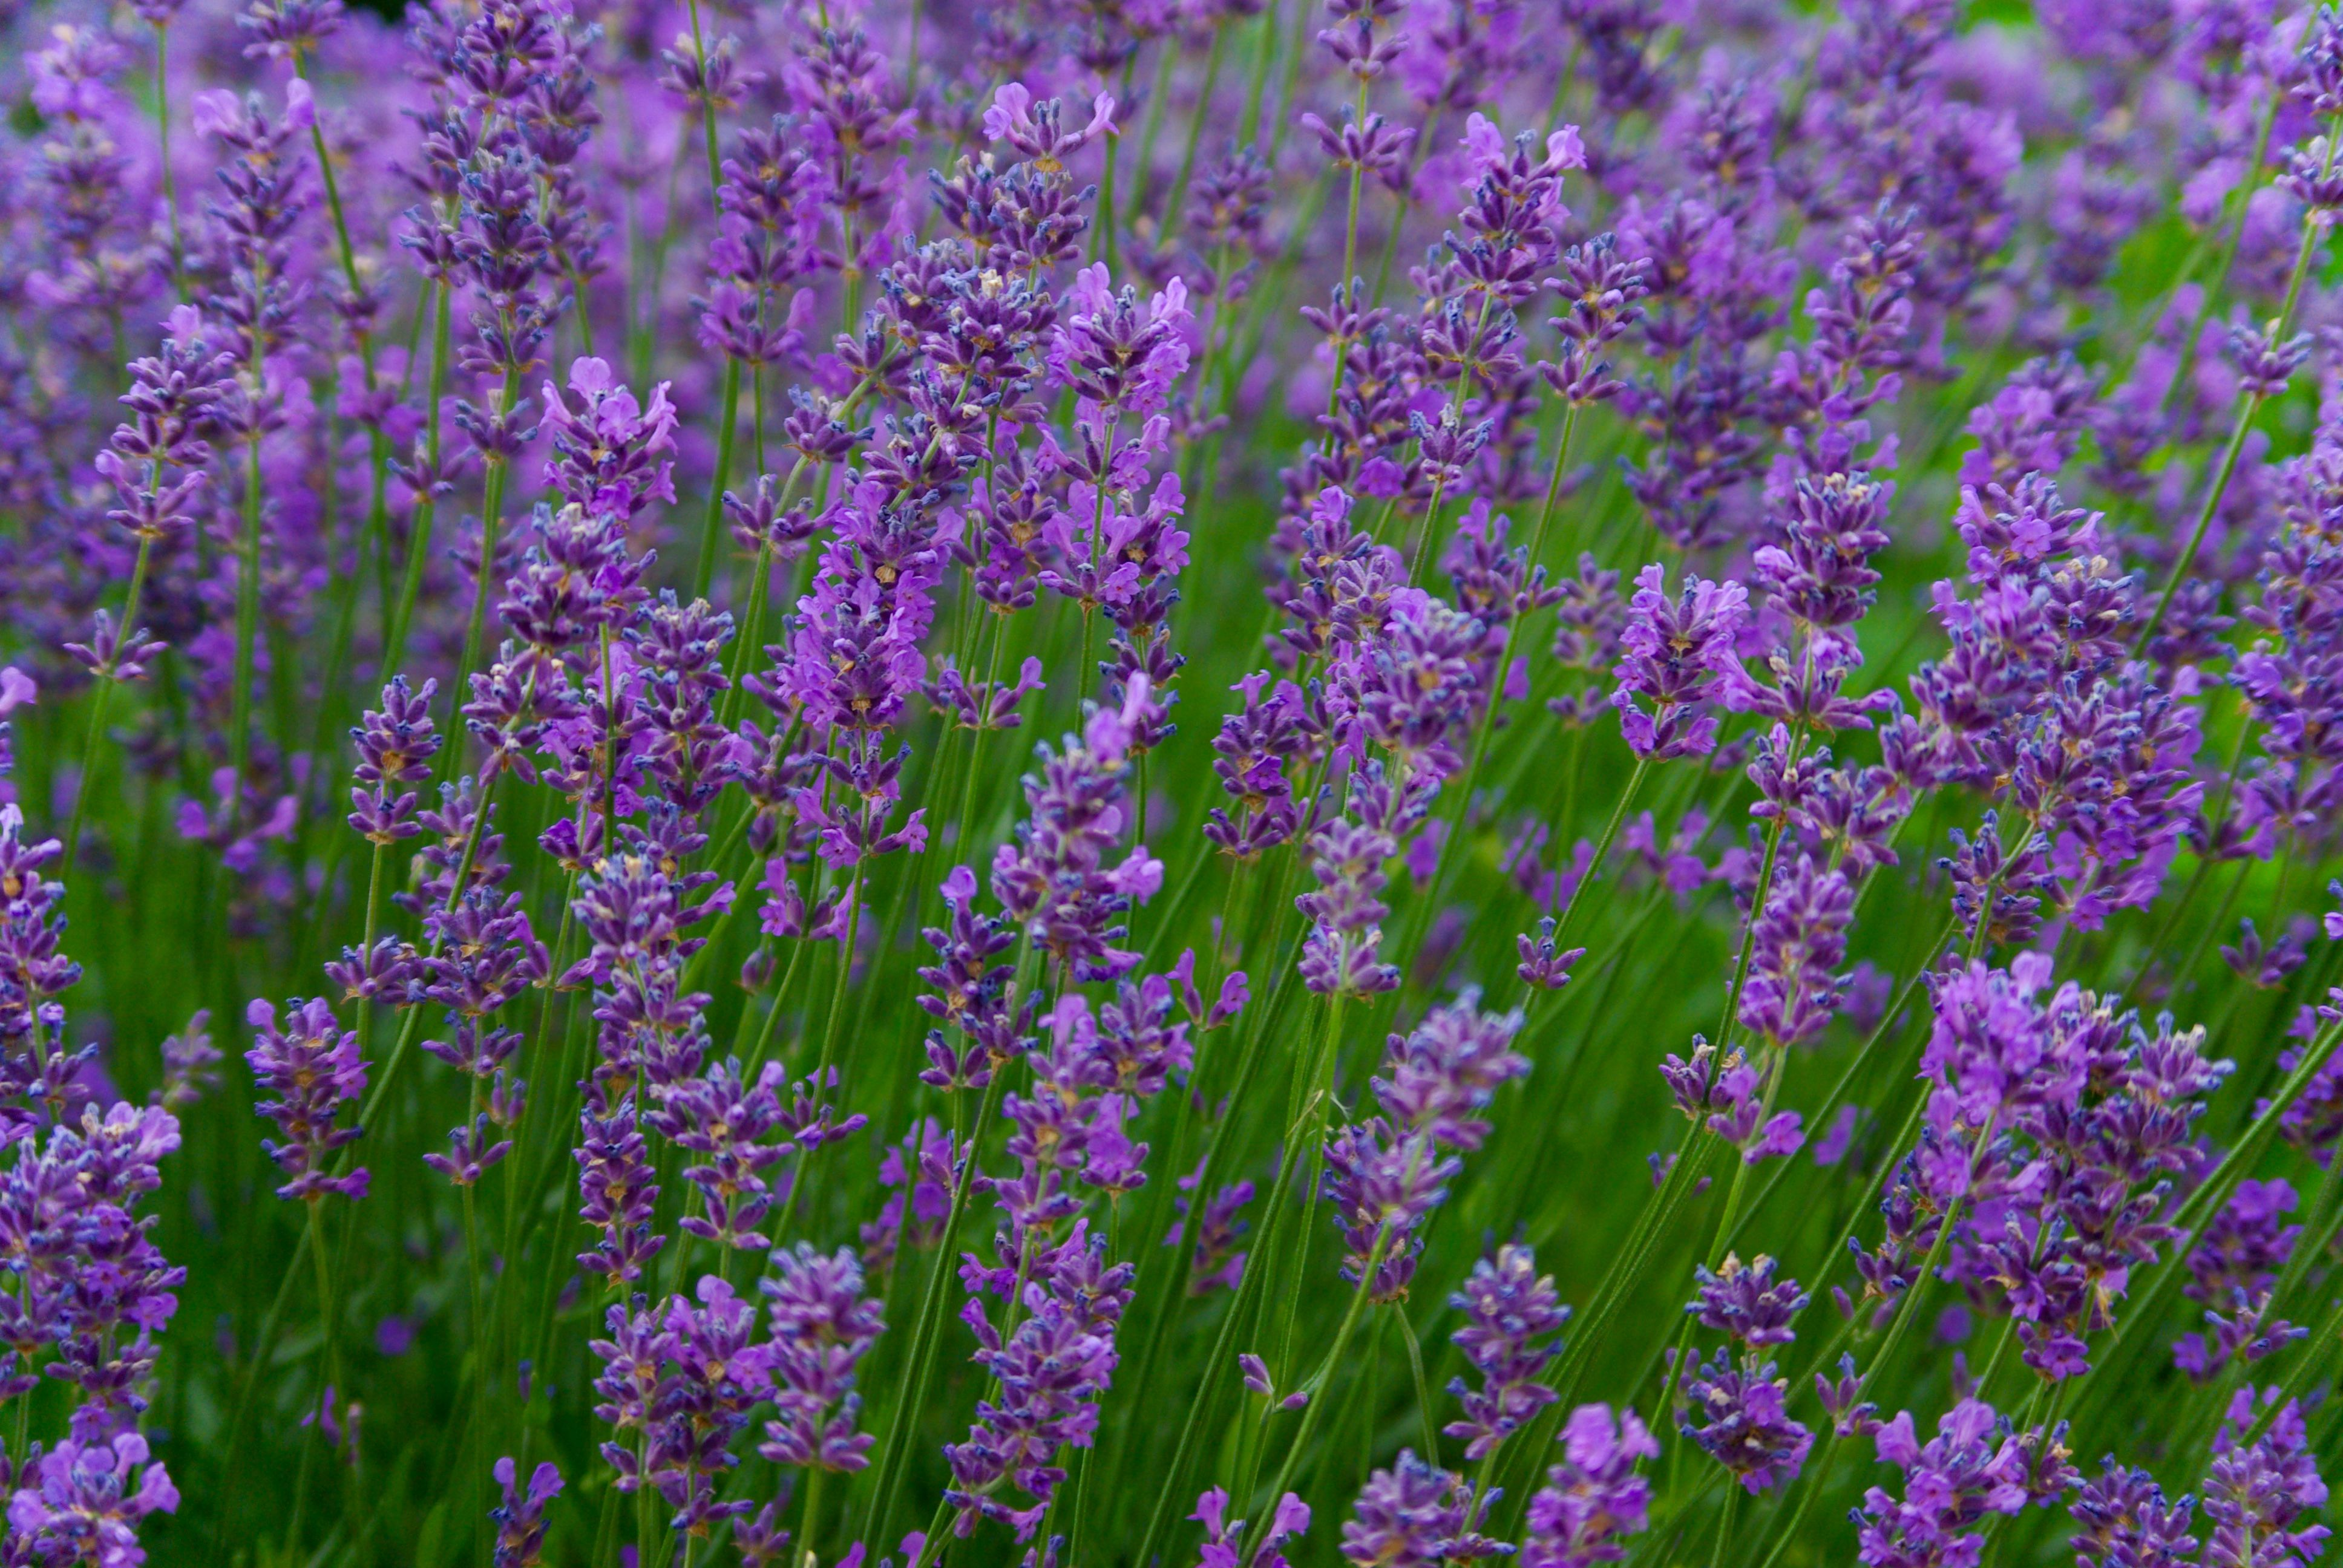 Lavender Lavender Perennial Edible Flowers You Can Eat Lavender